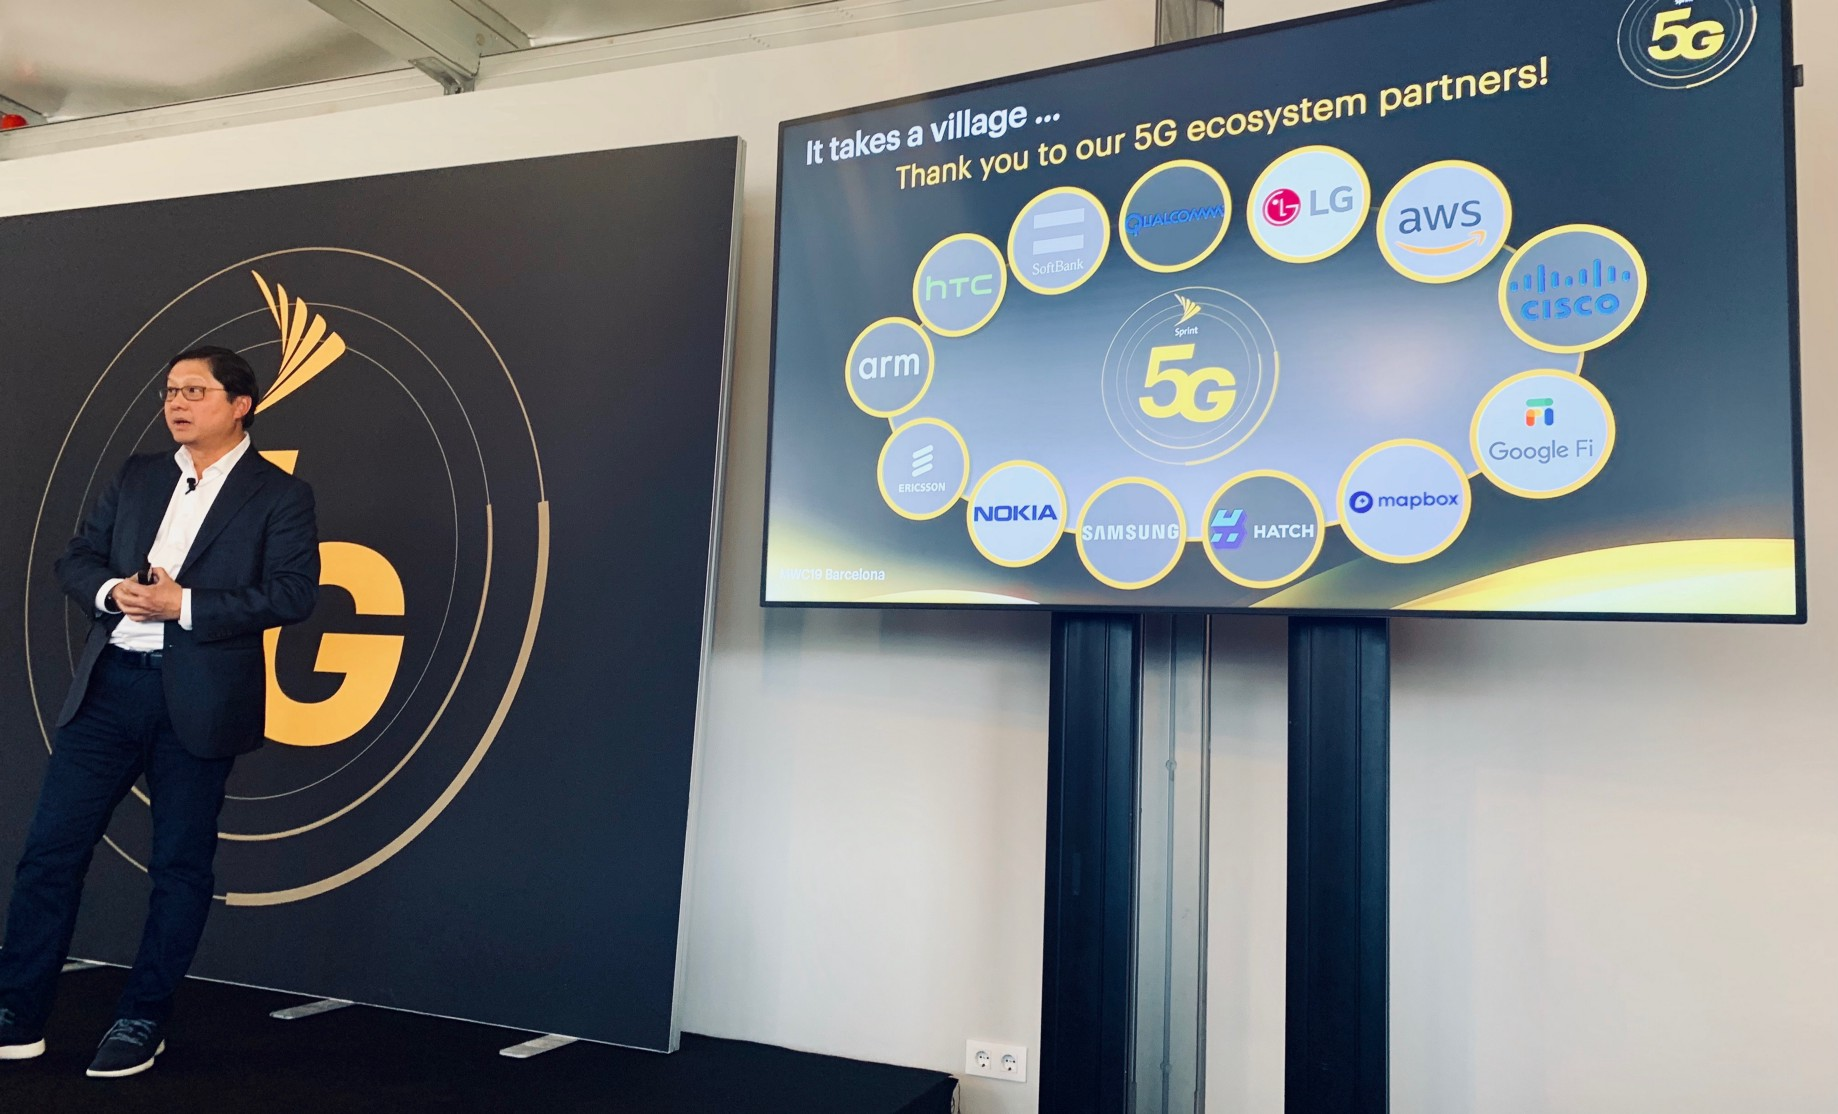 Sprint 5G Maps launch at Mobile World Congress - Points of interest